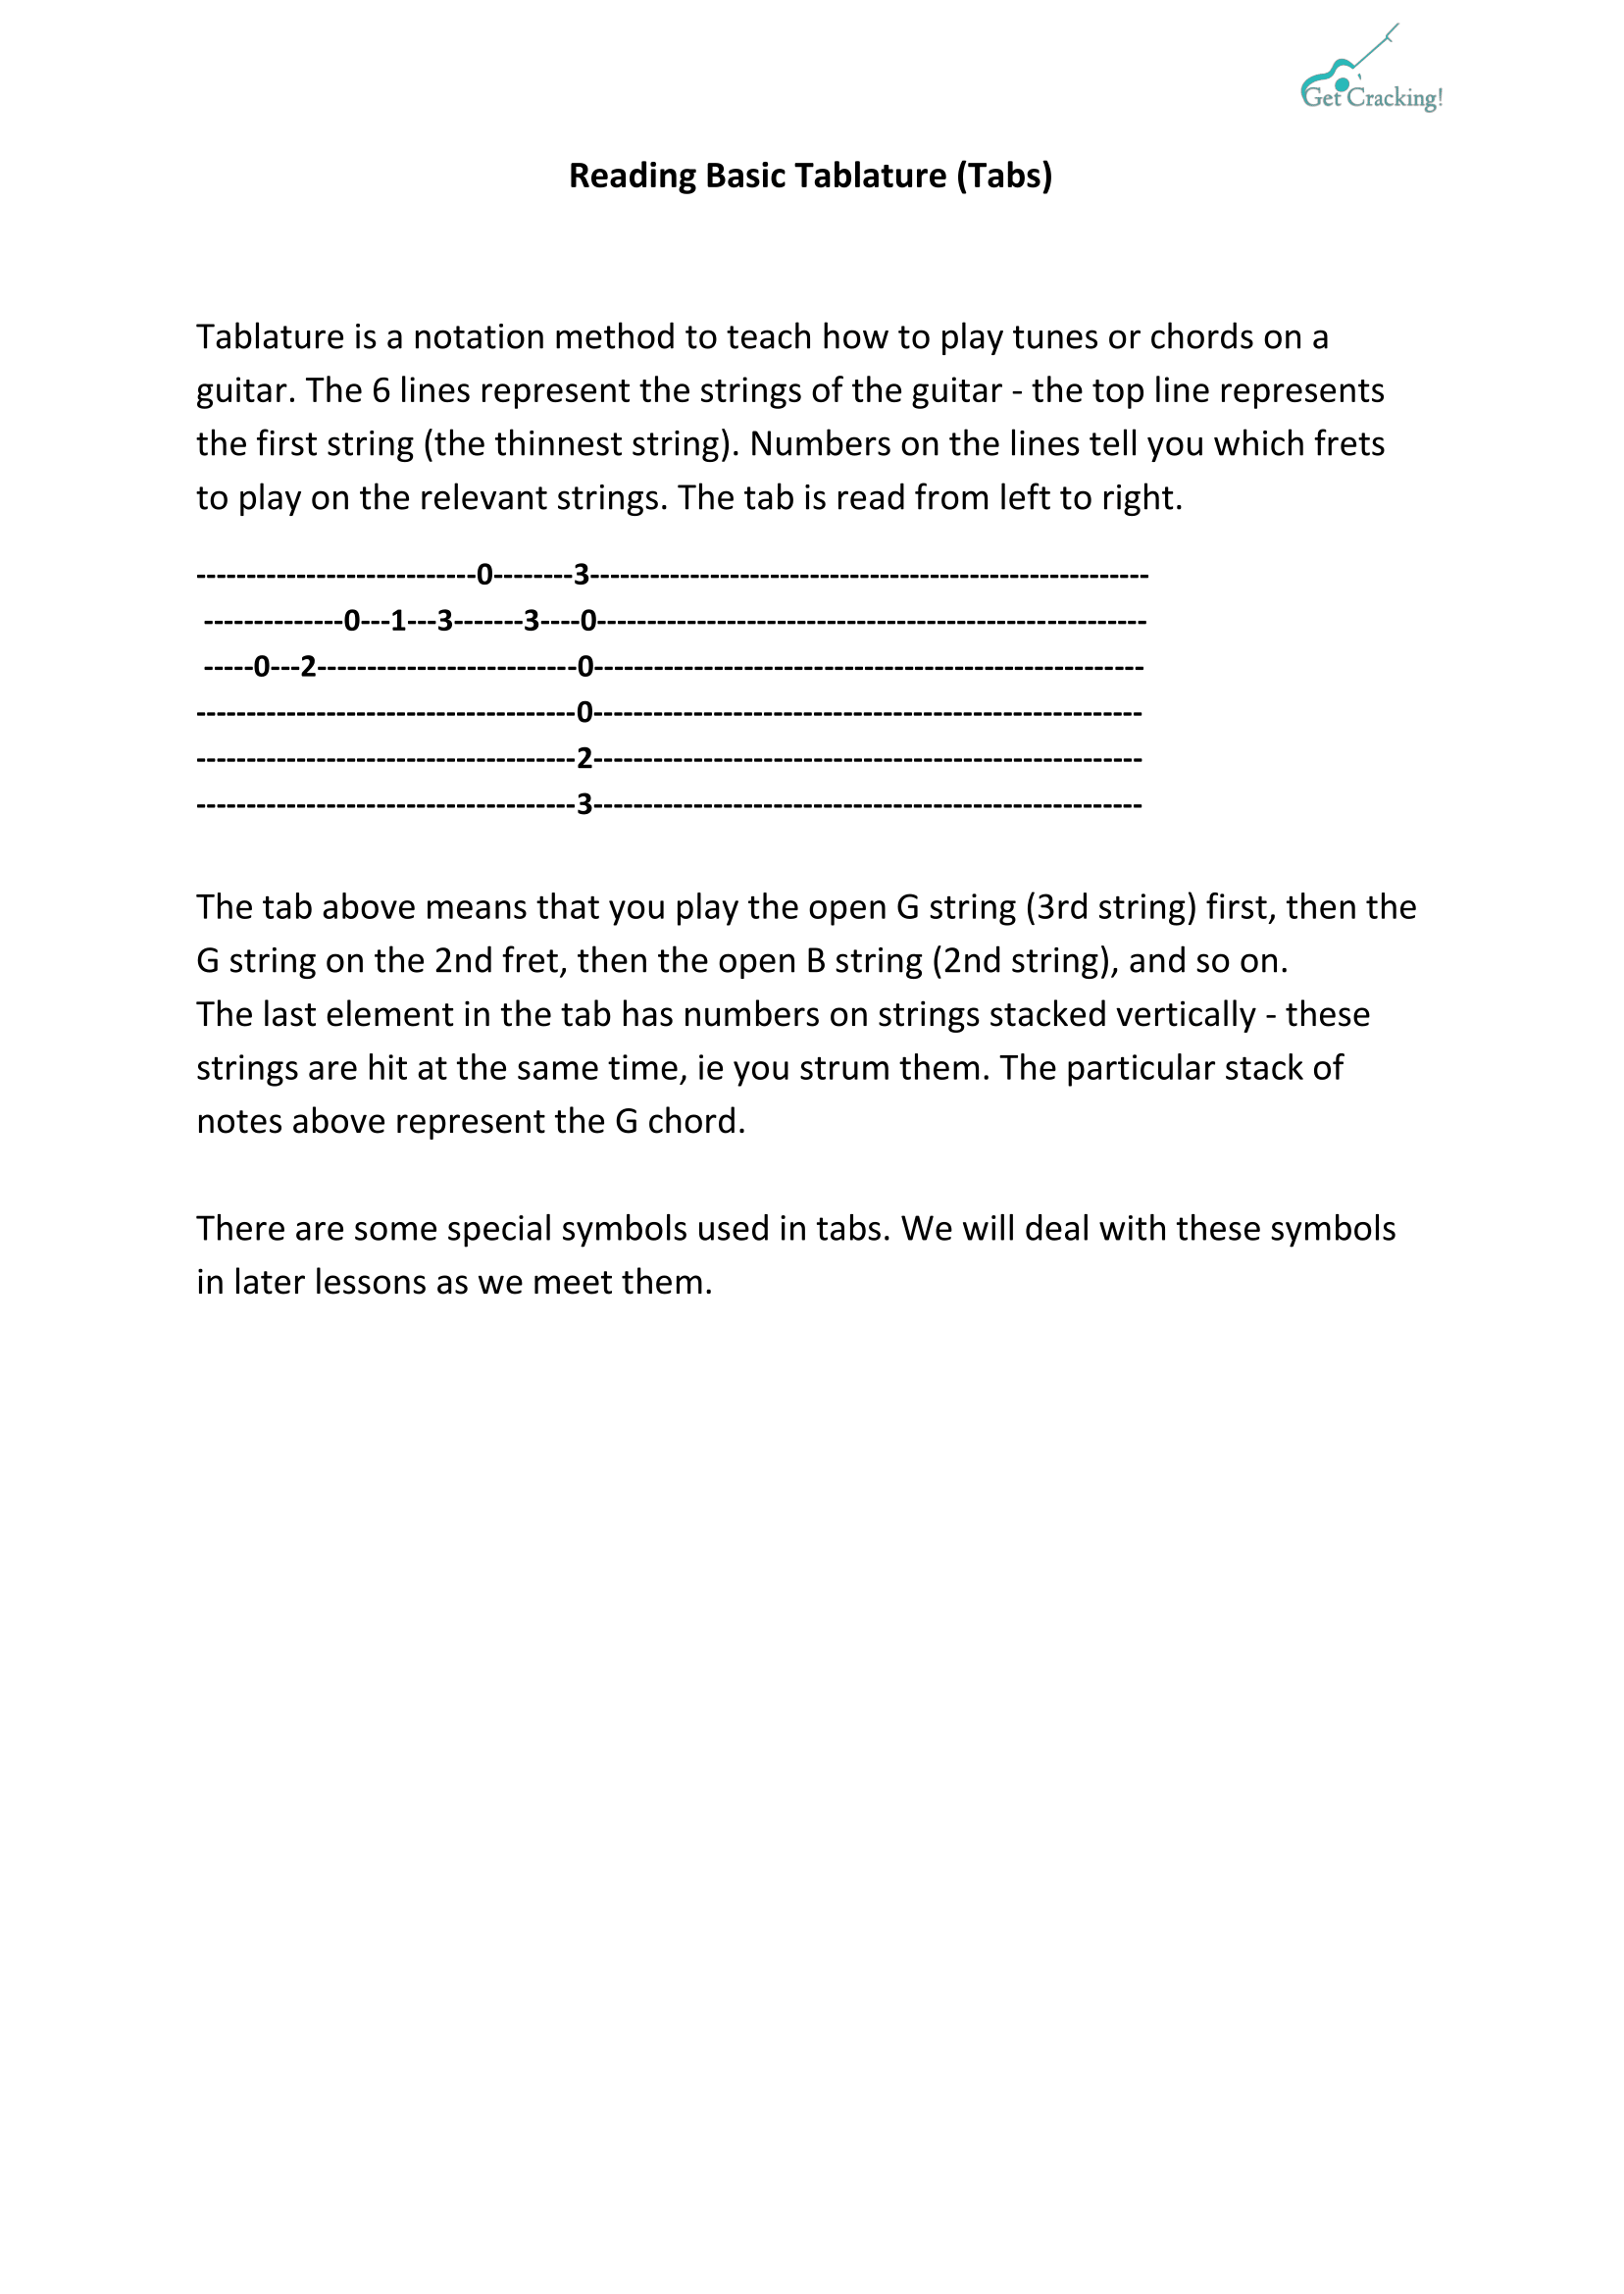 Reading Basic Tablature-1